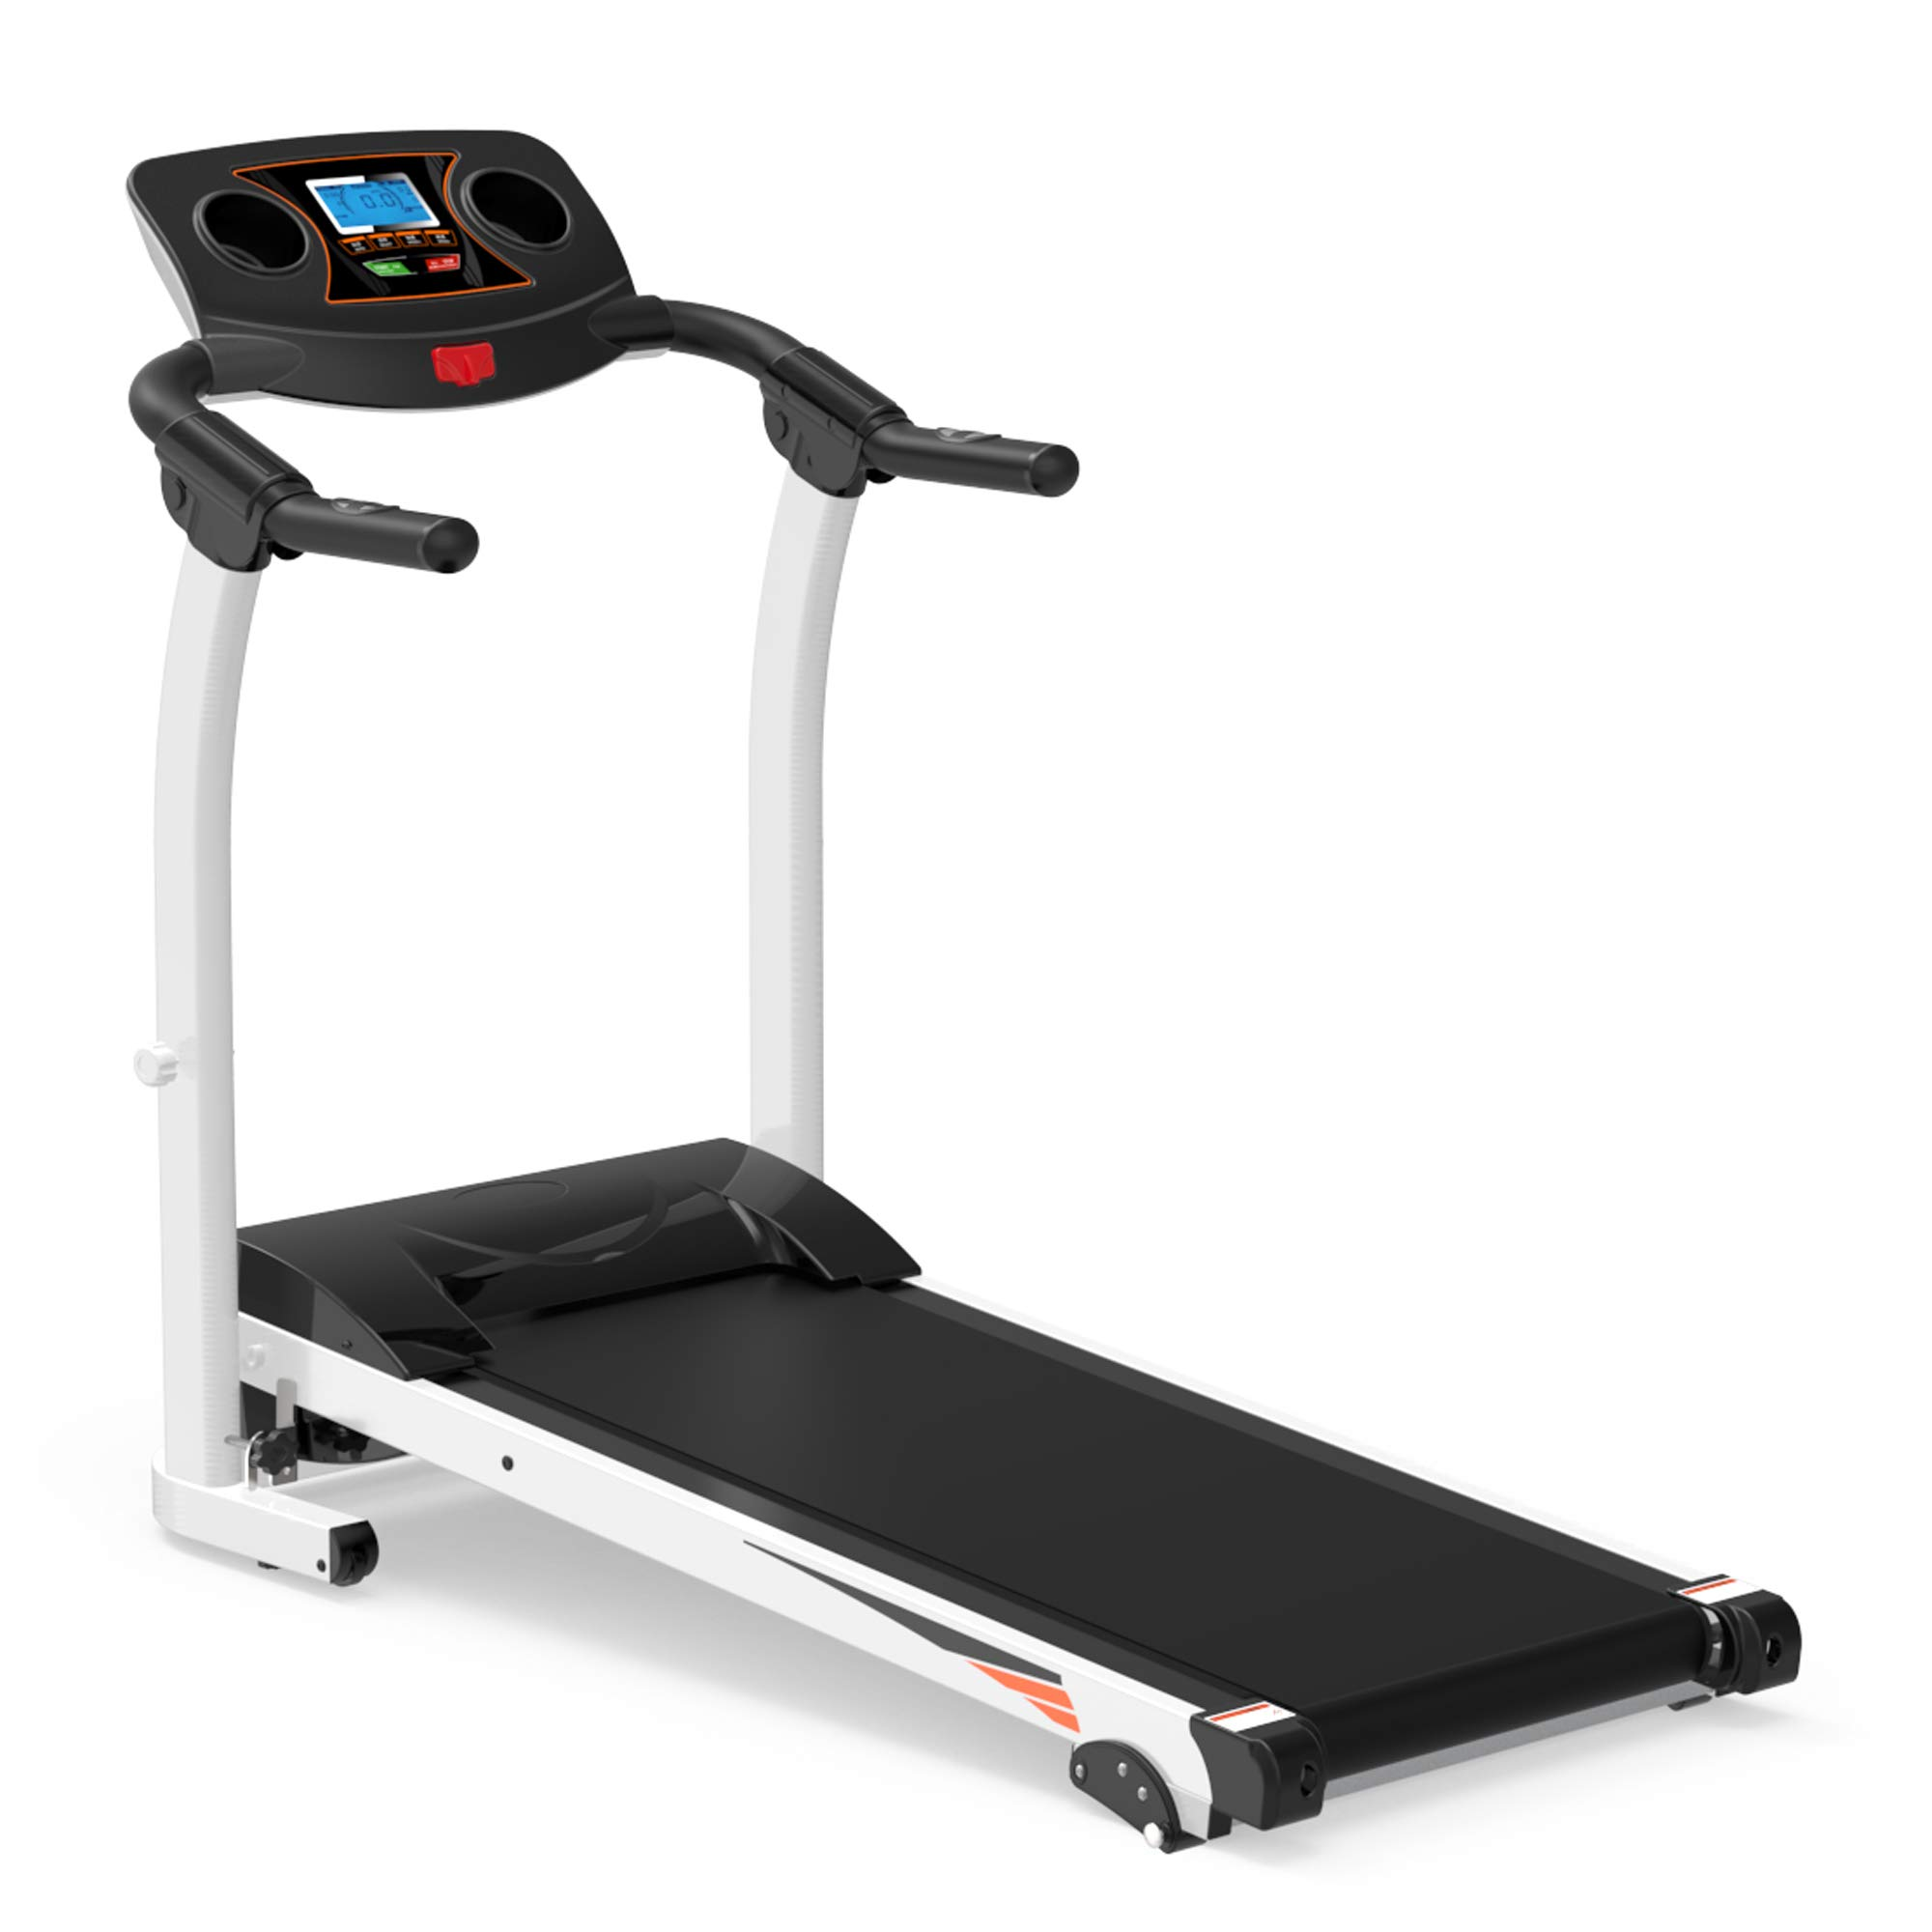 Rhomtree Folding Treadmill Electric Motorized Power Running Machine with Incline Walking Jogging Exercise Fitness Treadmill Workout Trainer Equipment for Home Gym Office by Rhomtree